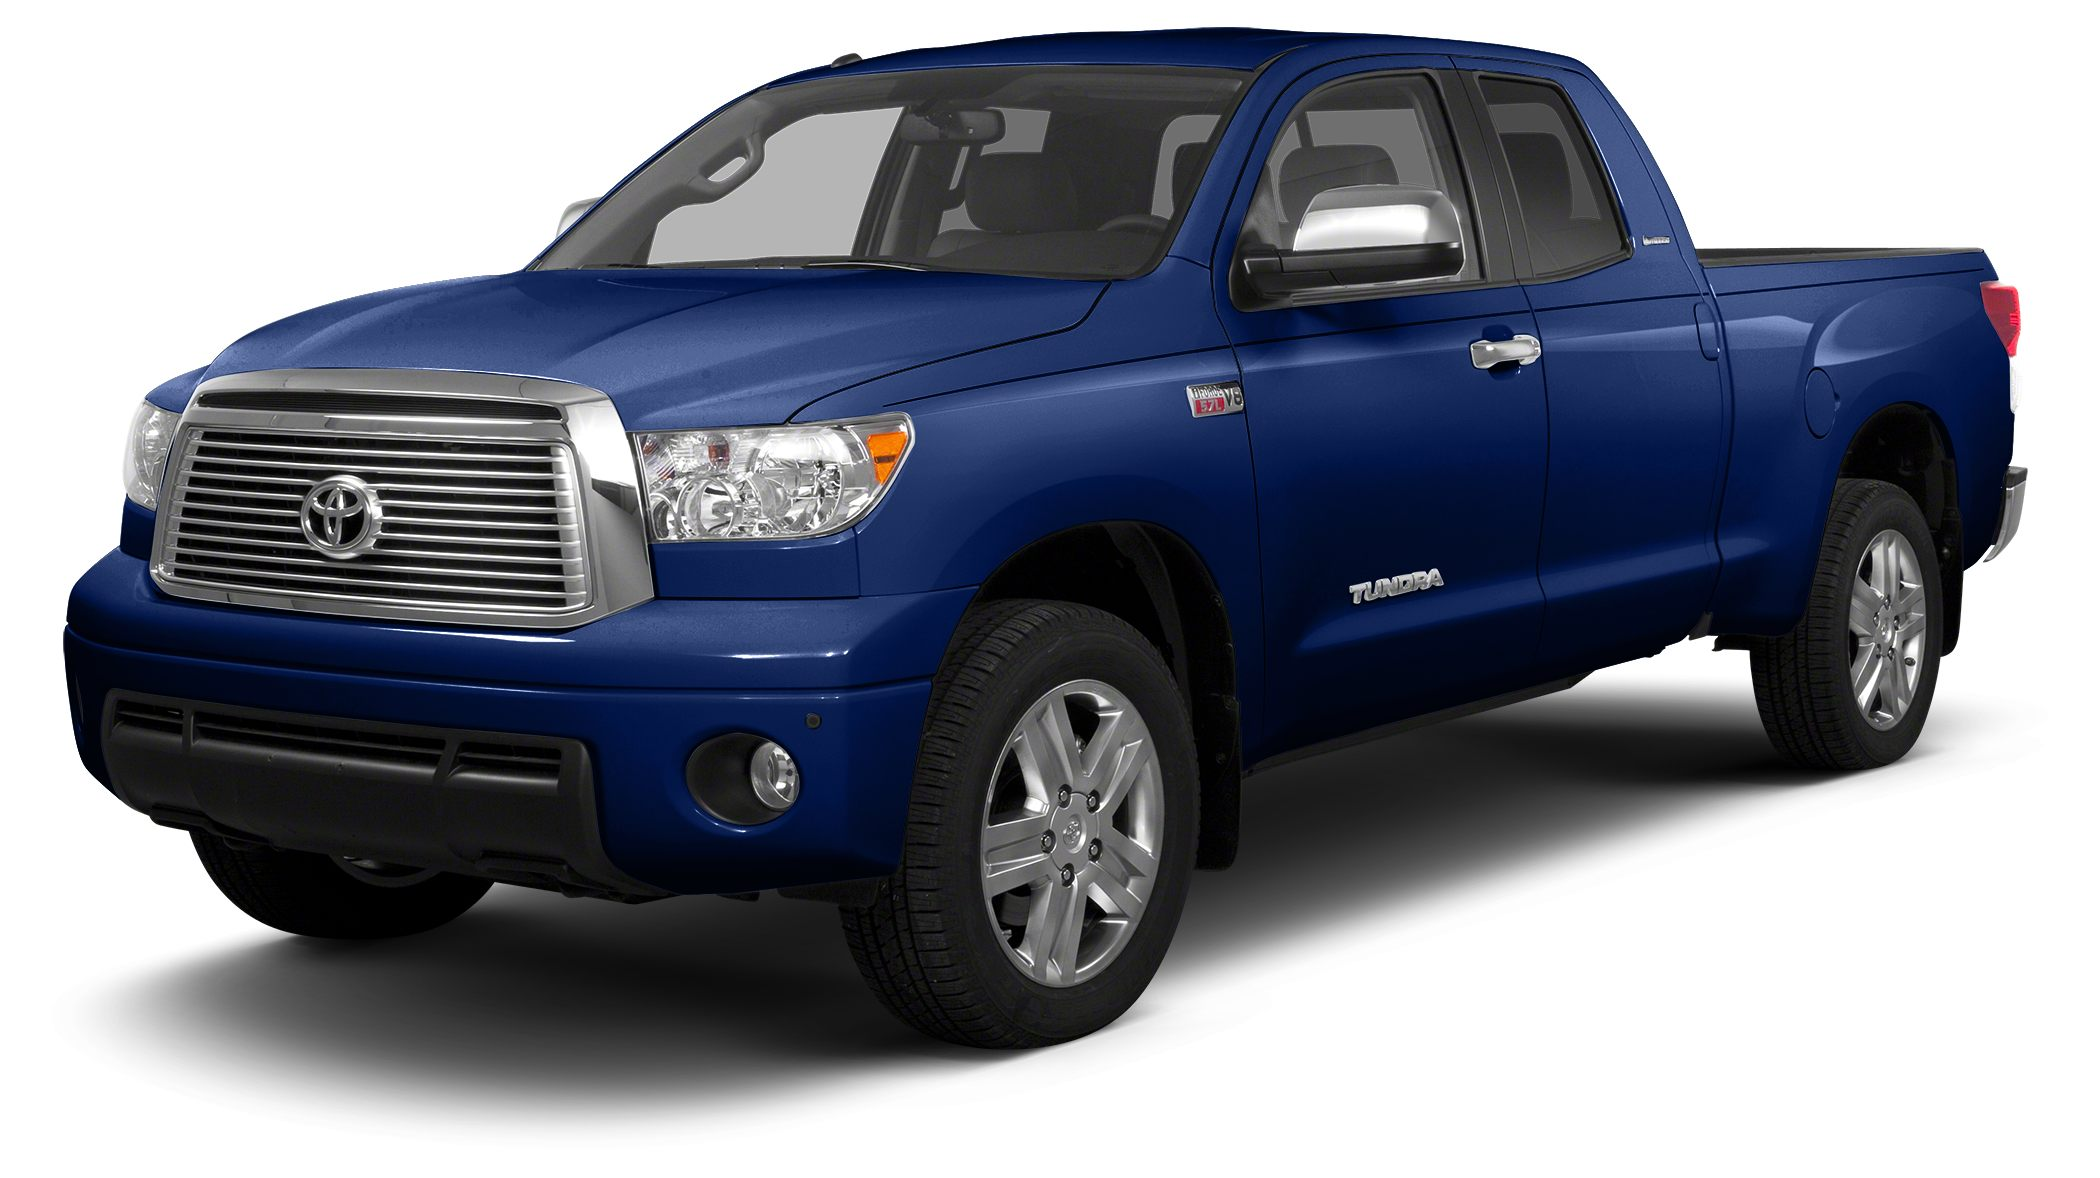 2013 Toyota Tundra Grade Your lucky day Youll NEVER pay too much at Route 44 Toyota Scion Are y